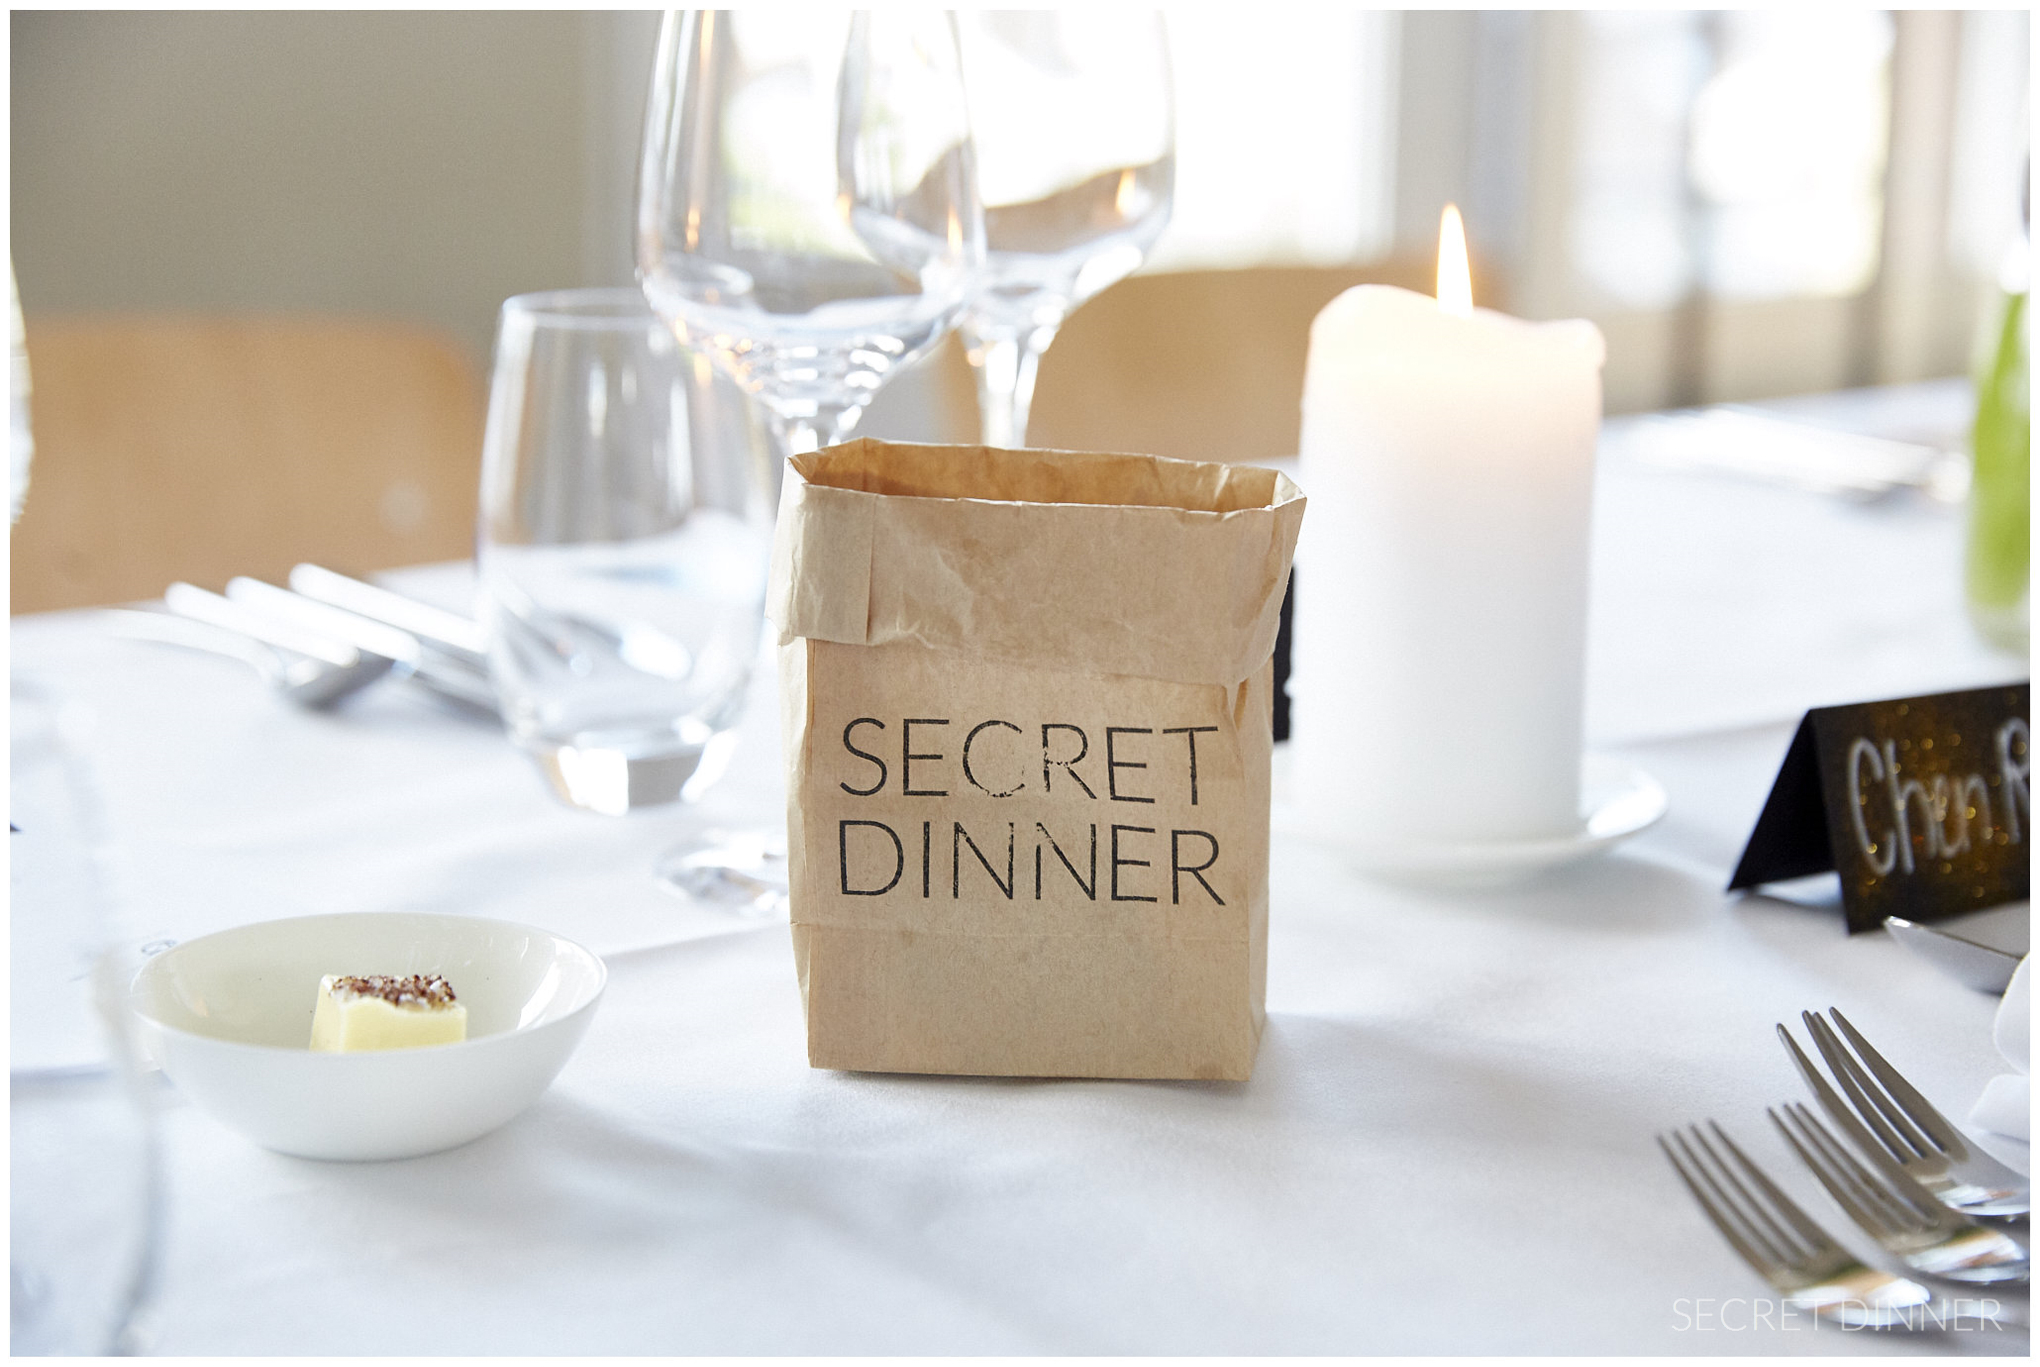 Secret Dinner_Downtown_Schrift_neu_66.jpg